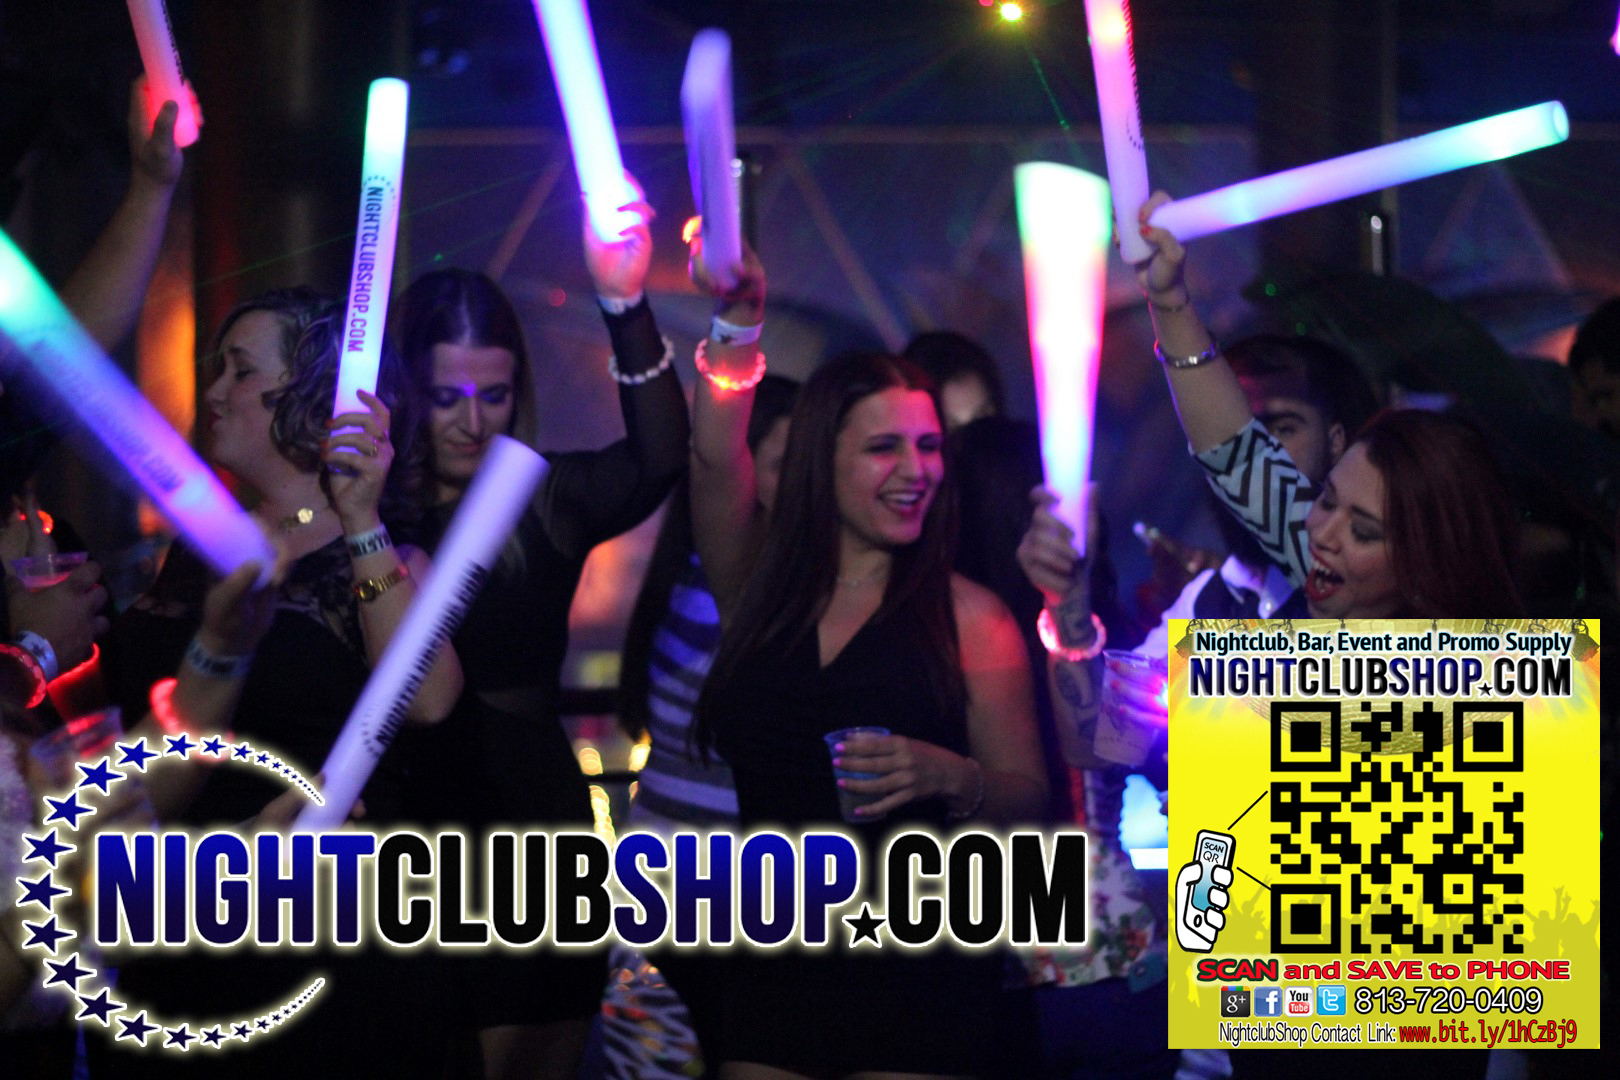 led-foam-sticks-custom-at-nightclub.jpg